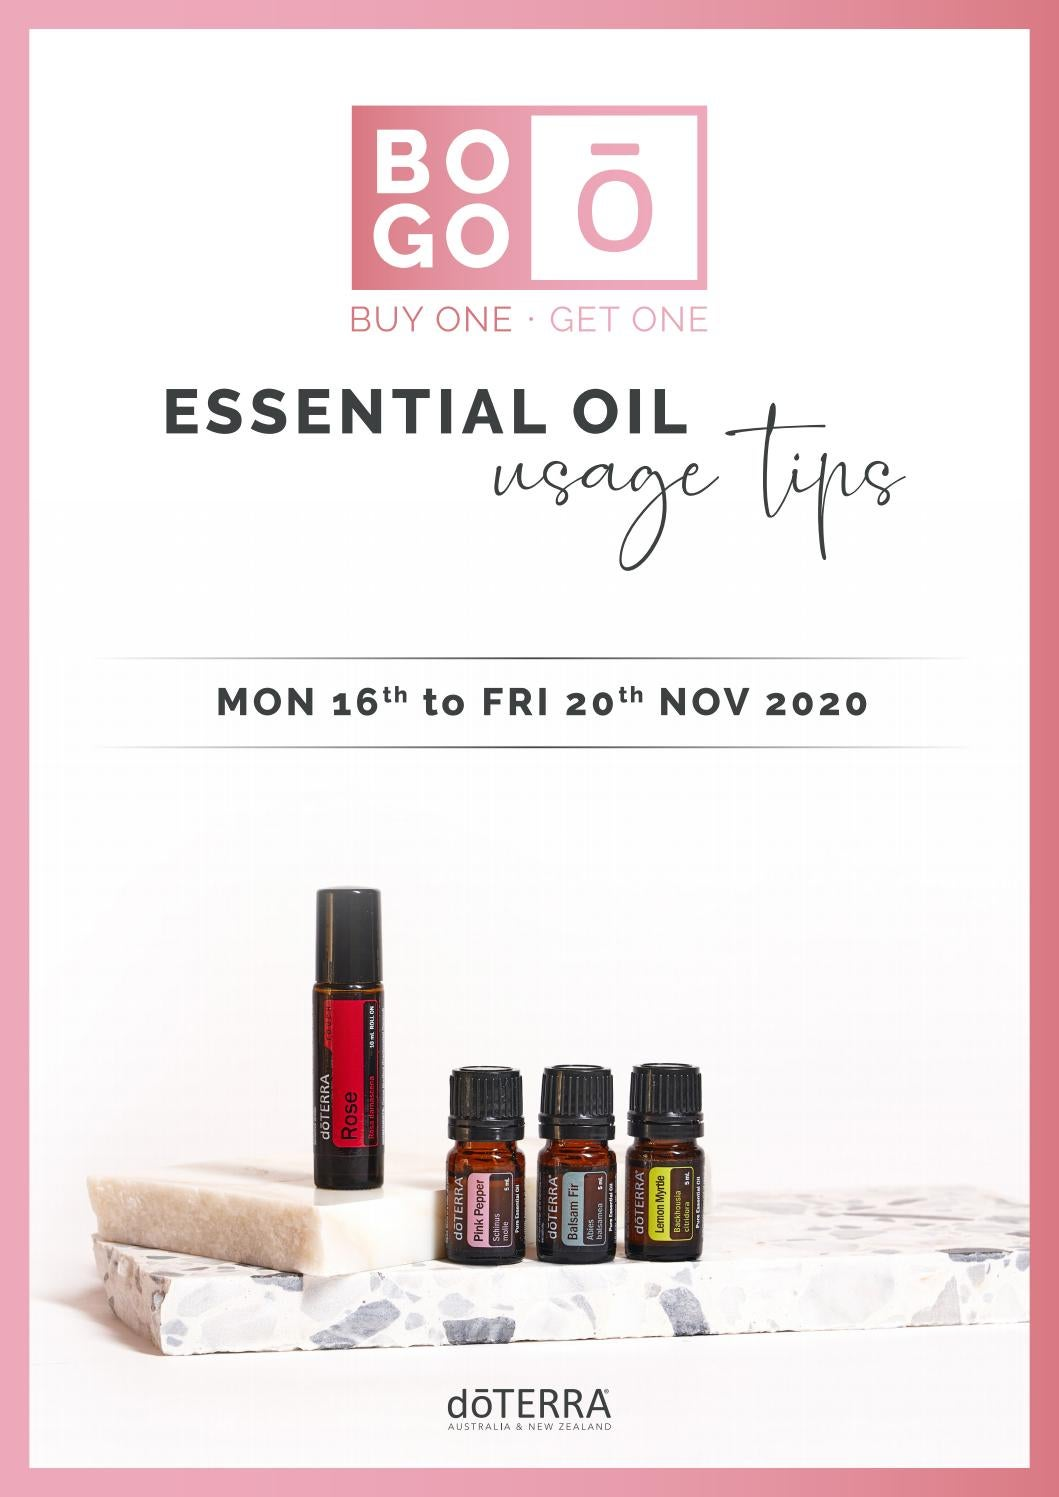 Doterra Aunz November 2020 Bogo Rose Touch Pink Pepper Balsam Fir Lemon Myrtle By Doterraaunz Issuu